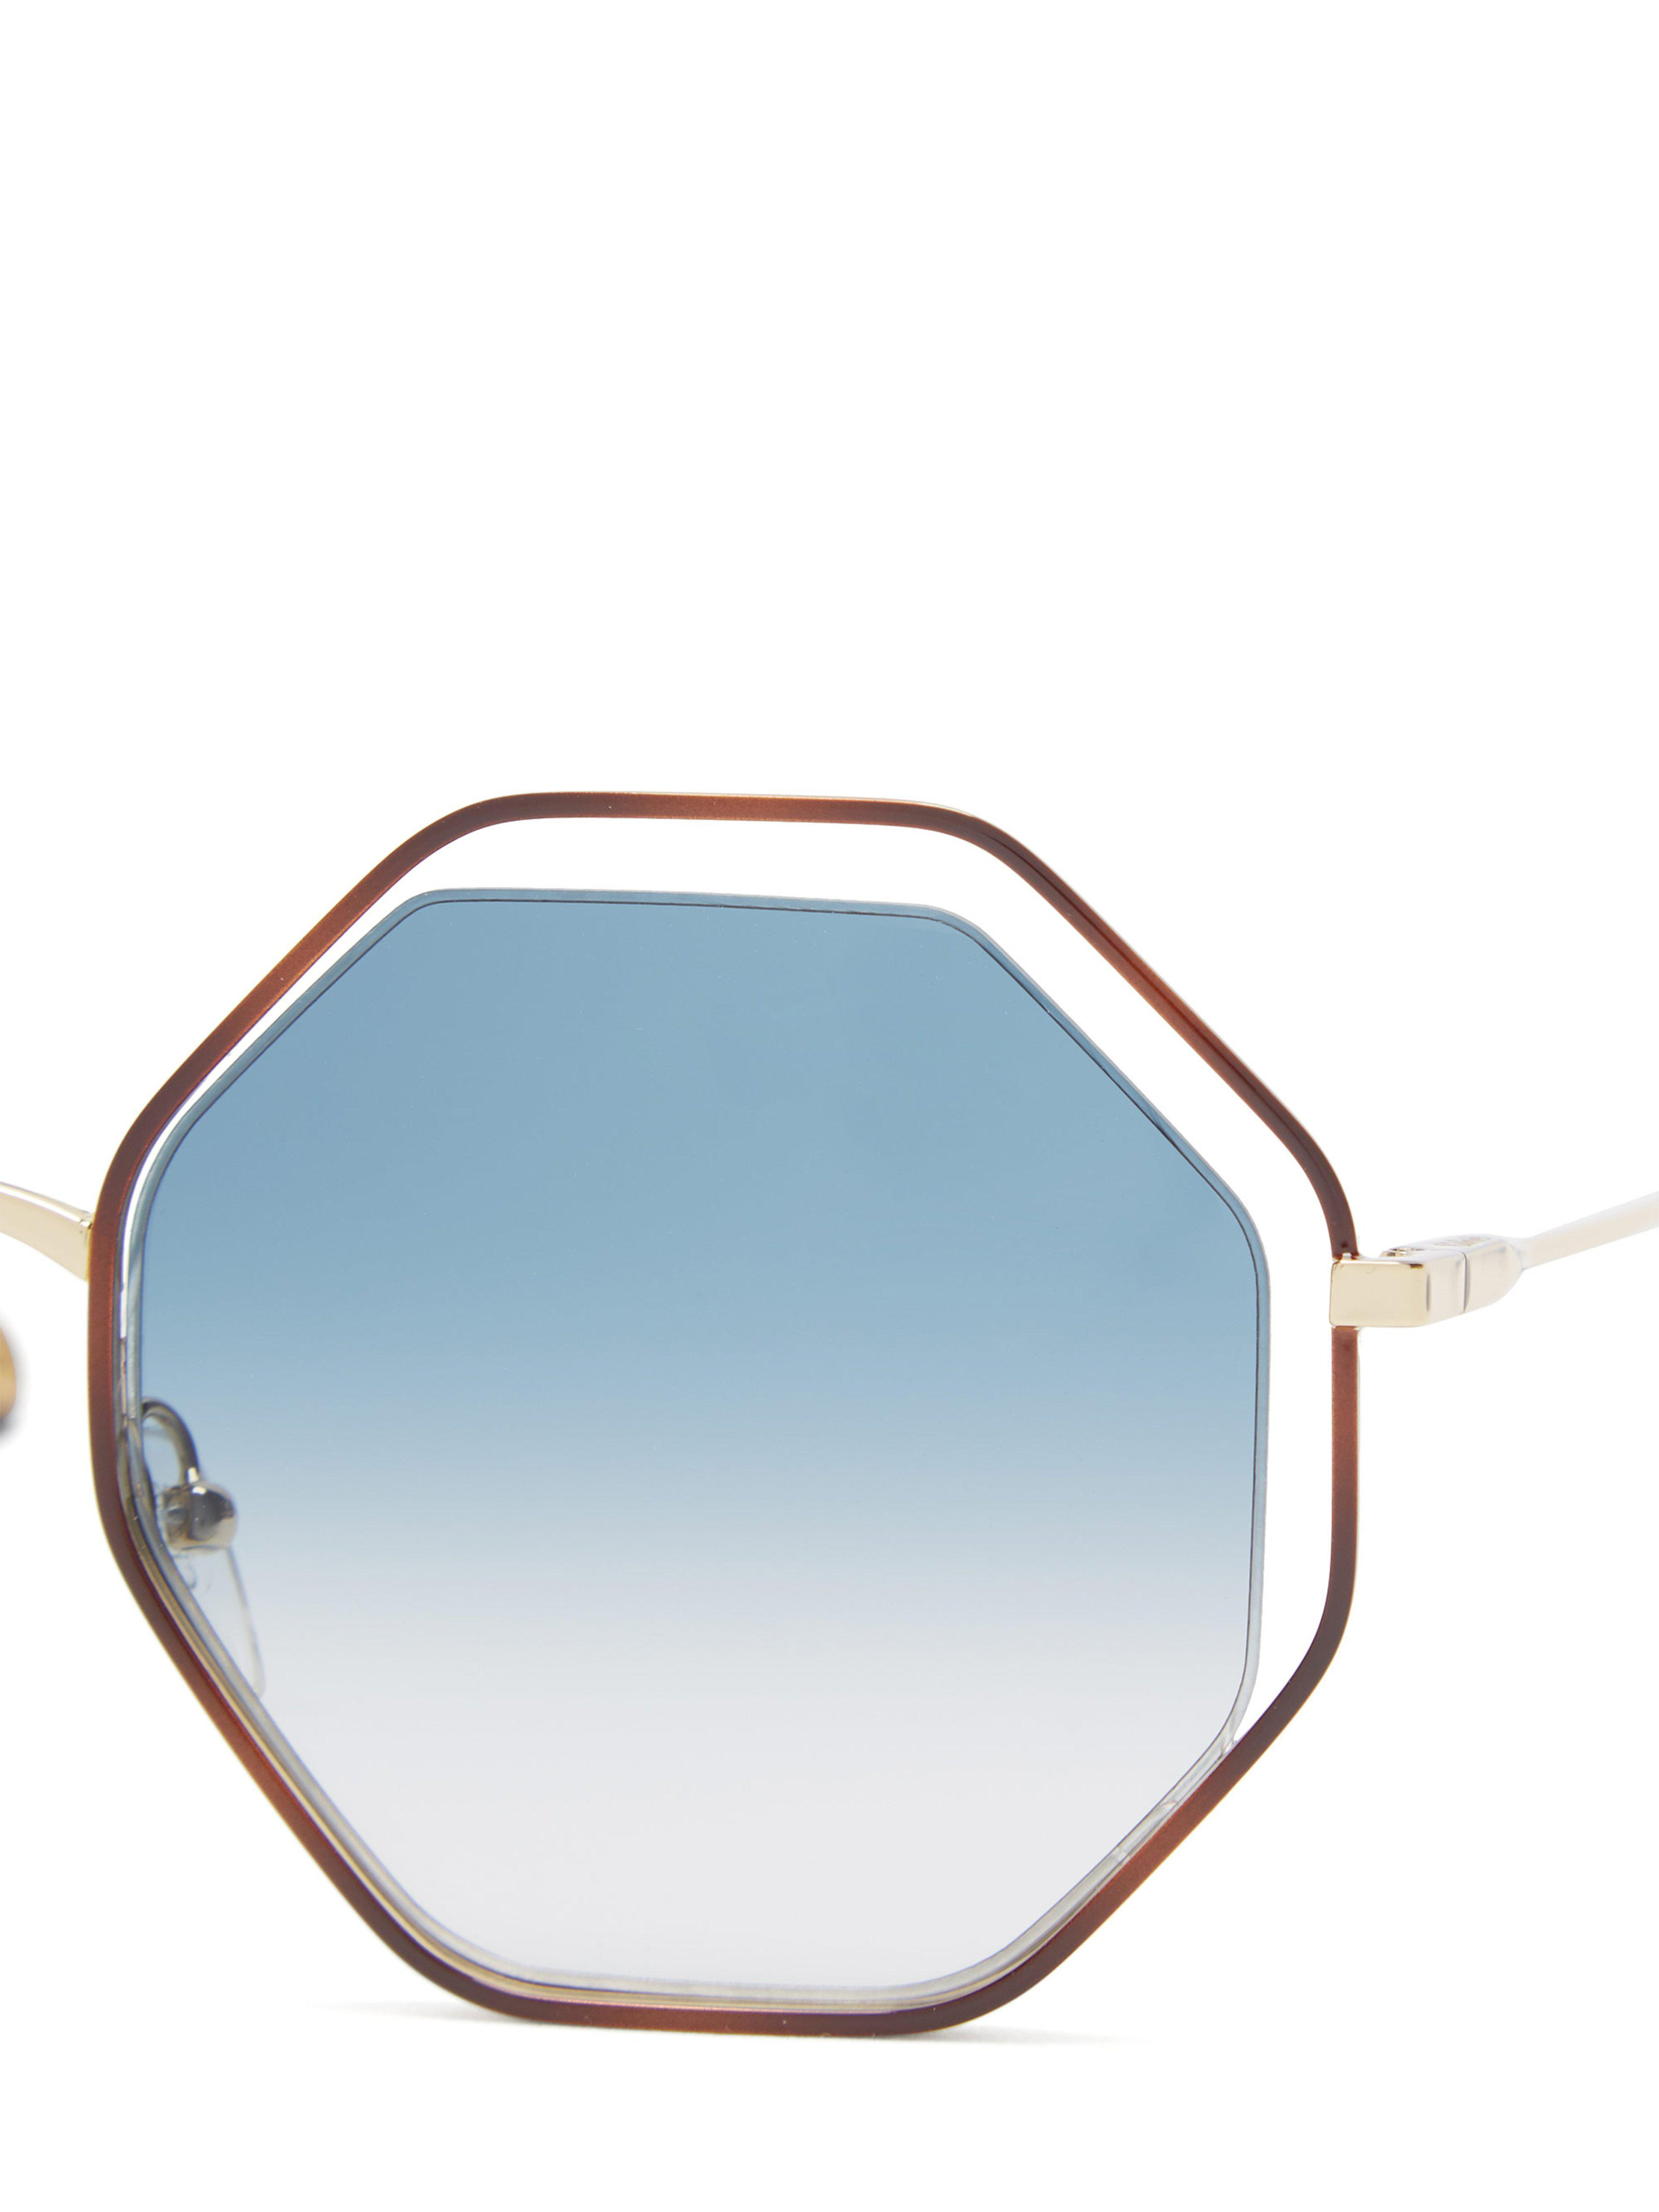 171b8a84245 Chloé - Blue Poppy Octagonal Framed Sunglasses - Lyst. View fullscreen